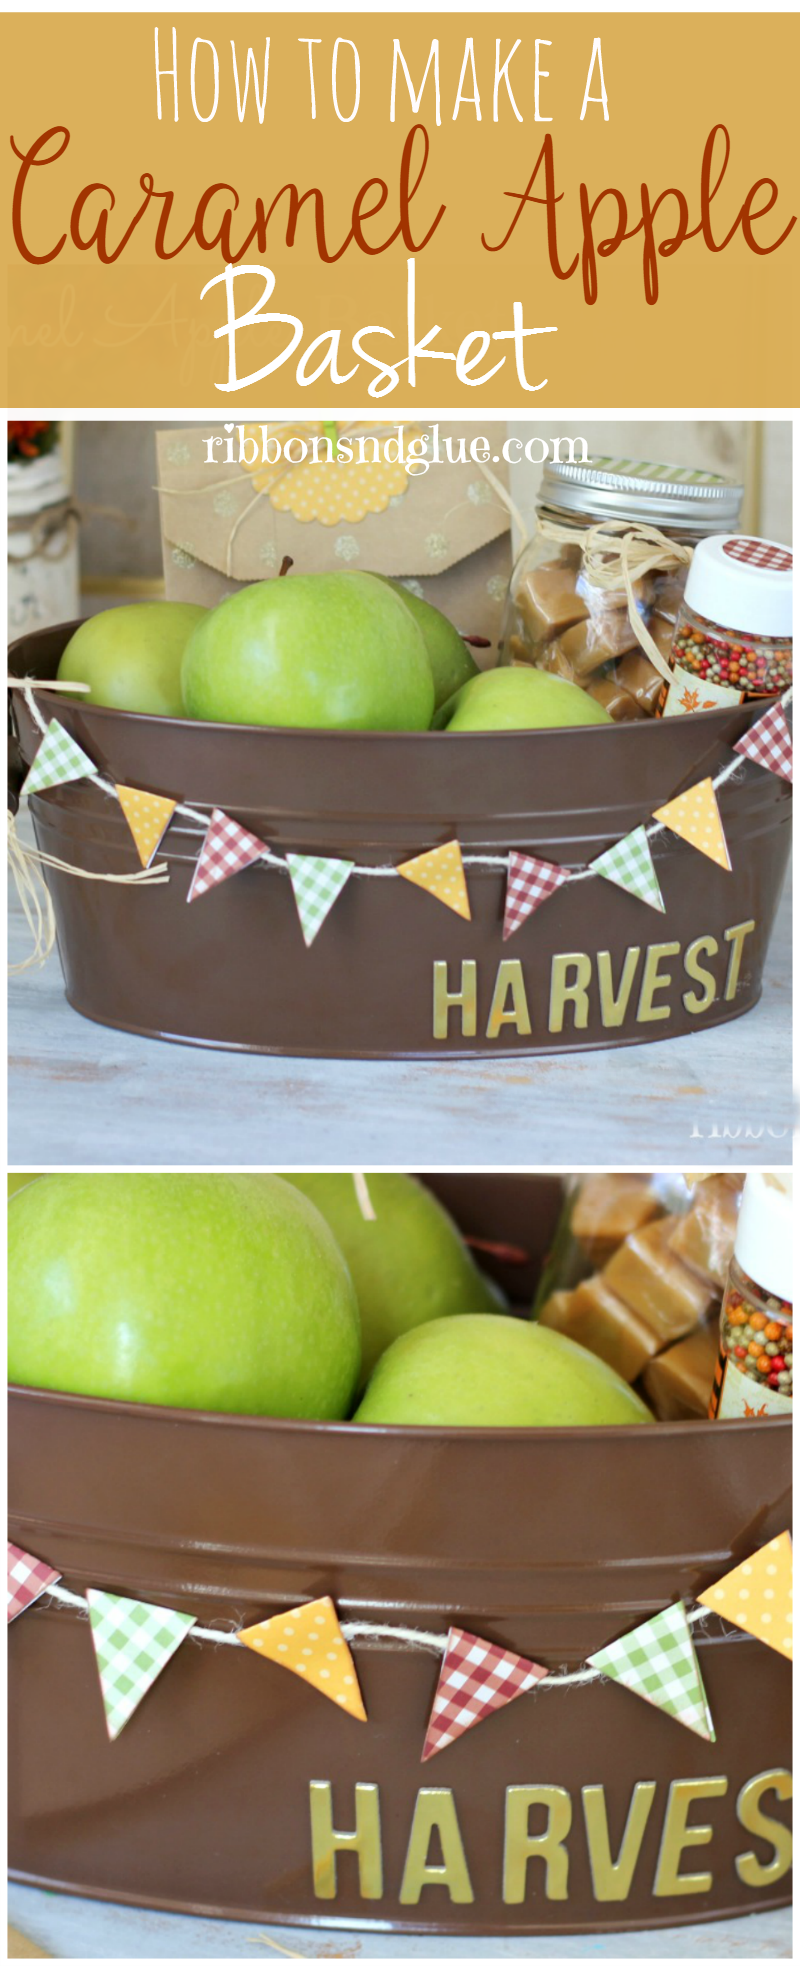 This Fall Caramel Apple Gift Basket idea contains everything you would need to make your own Fall gift basket  for friends and neighbors.